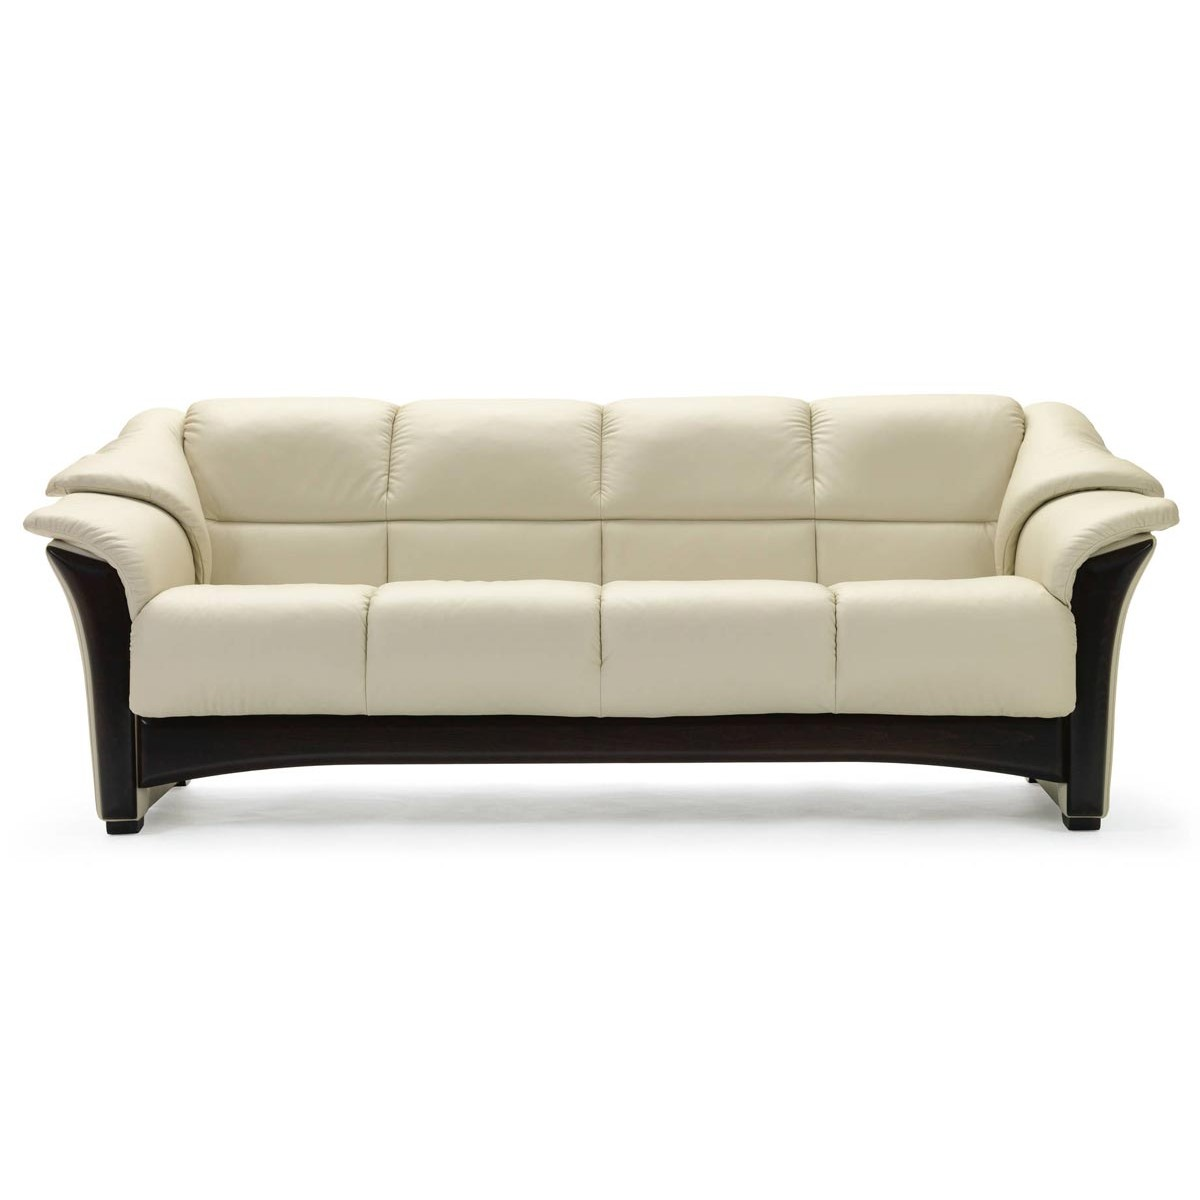 contemporary sofa with wood trim two seater recliner black leather fabric tufted